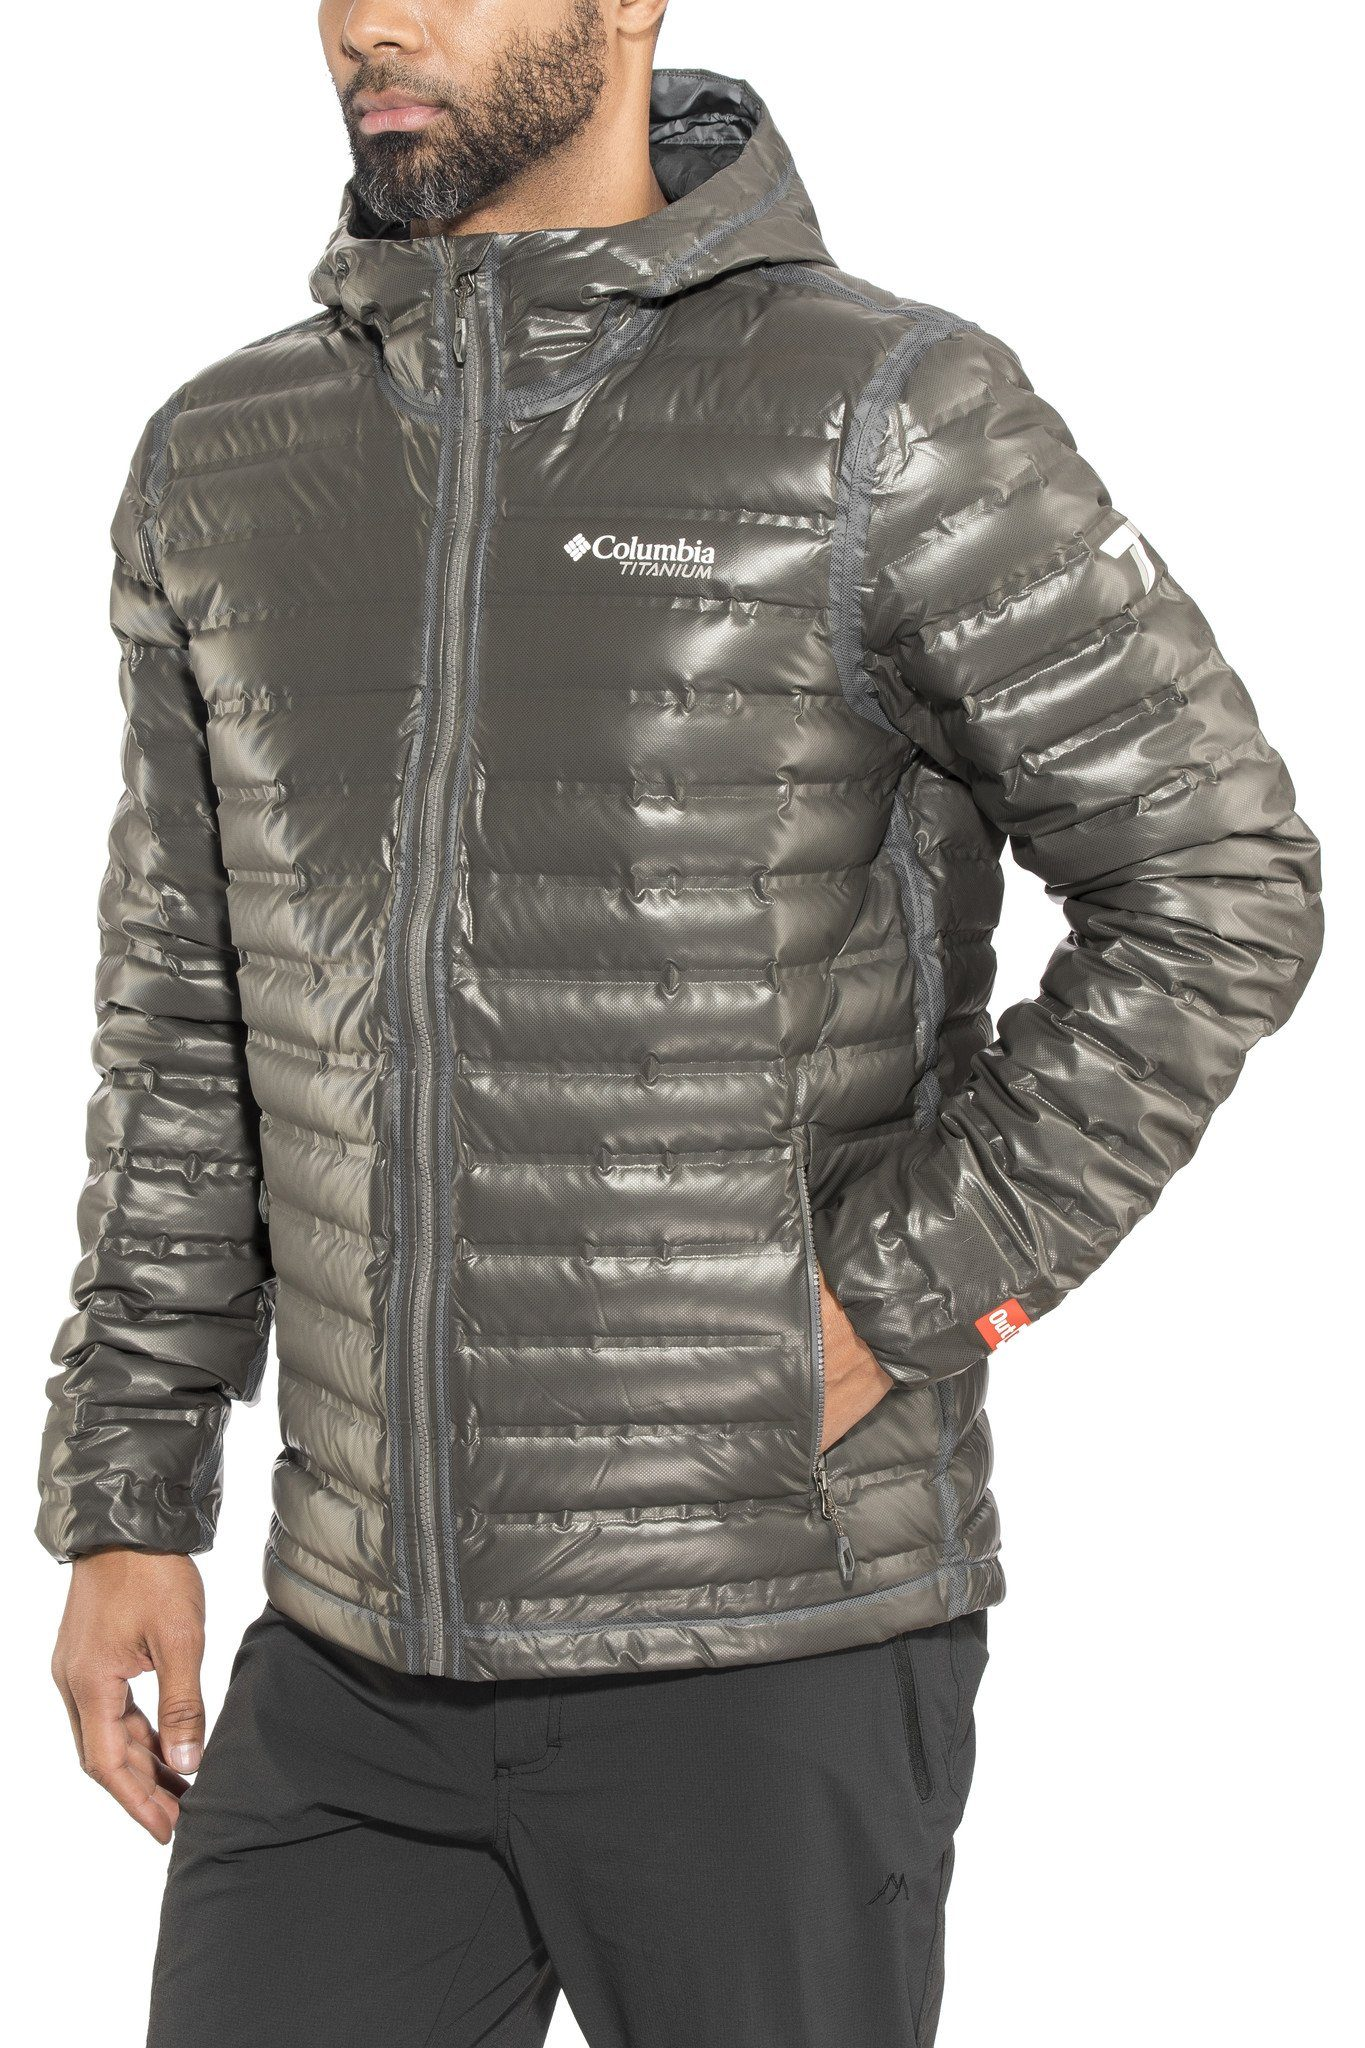 Columbia Outdoorjacke »OutDry EX Gold Down Hooded Jacket Herren« online kaufen | OTTO